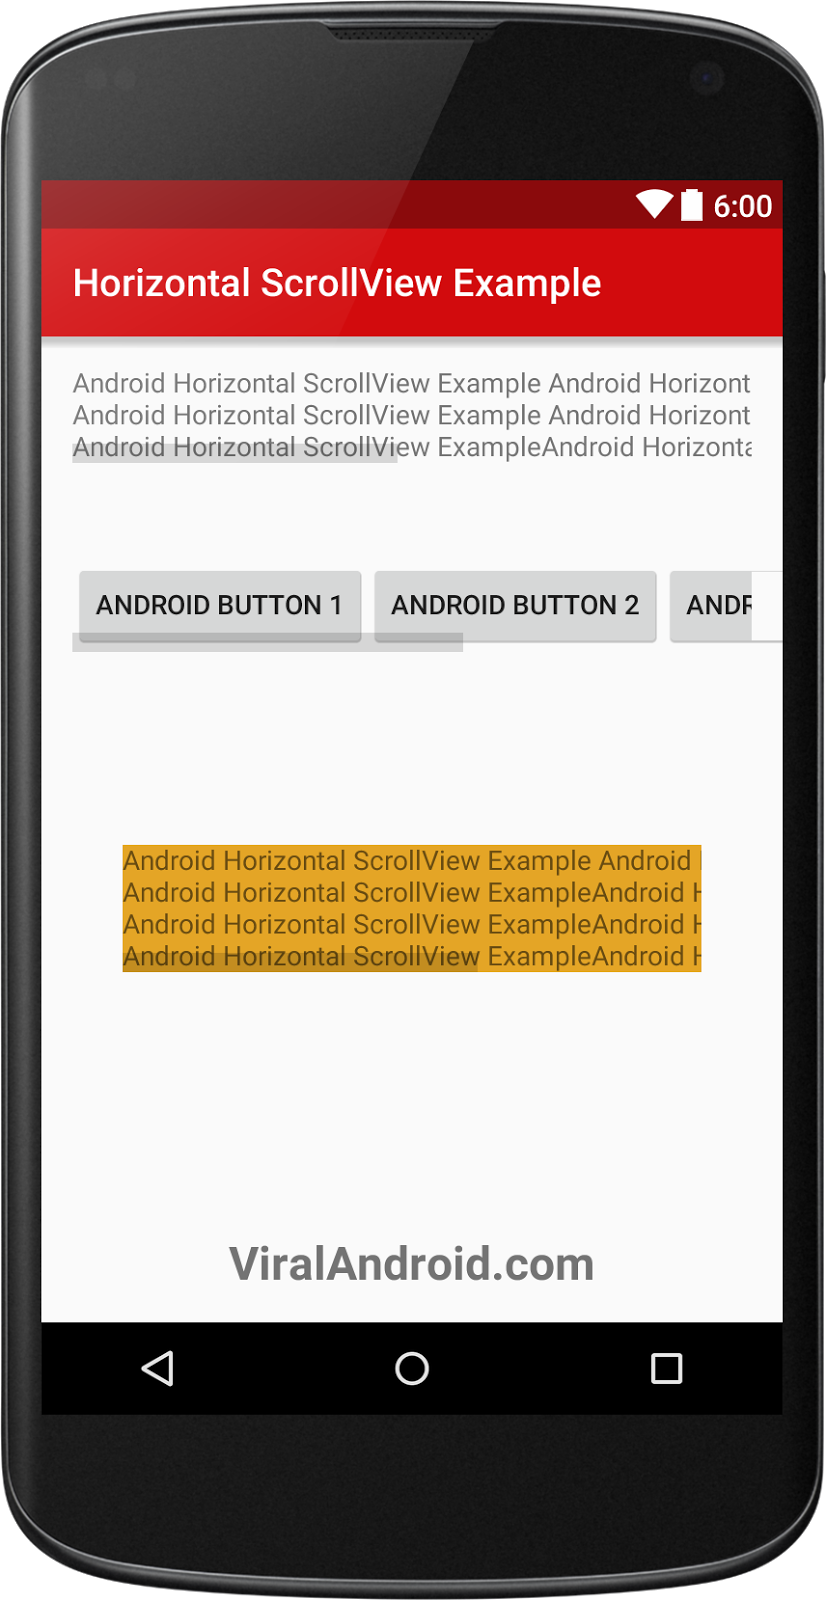 Android HorizontalScrollView Example